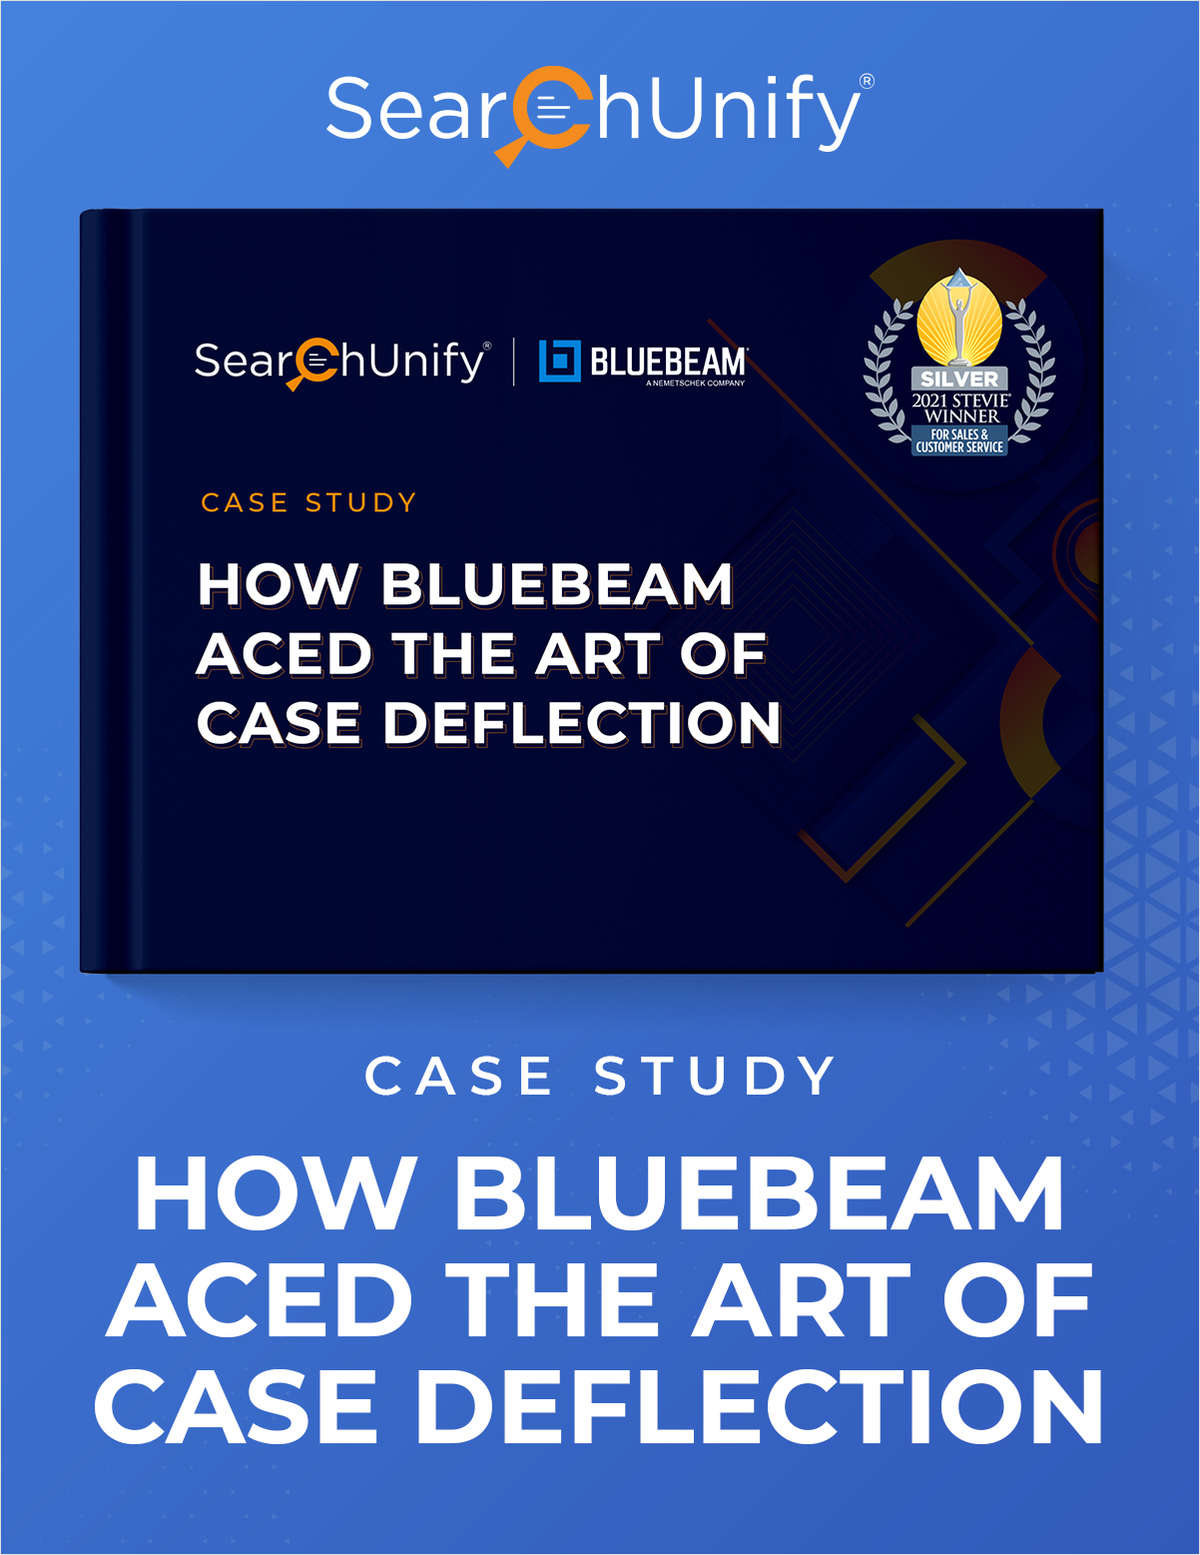 How Bluebeam Aced the Art of Case Deflection